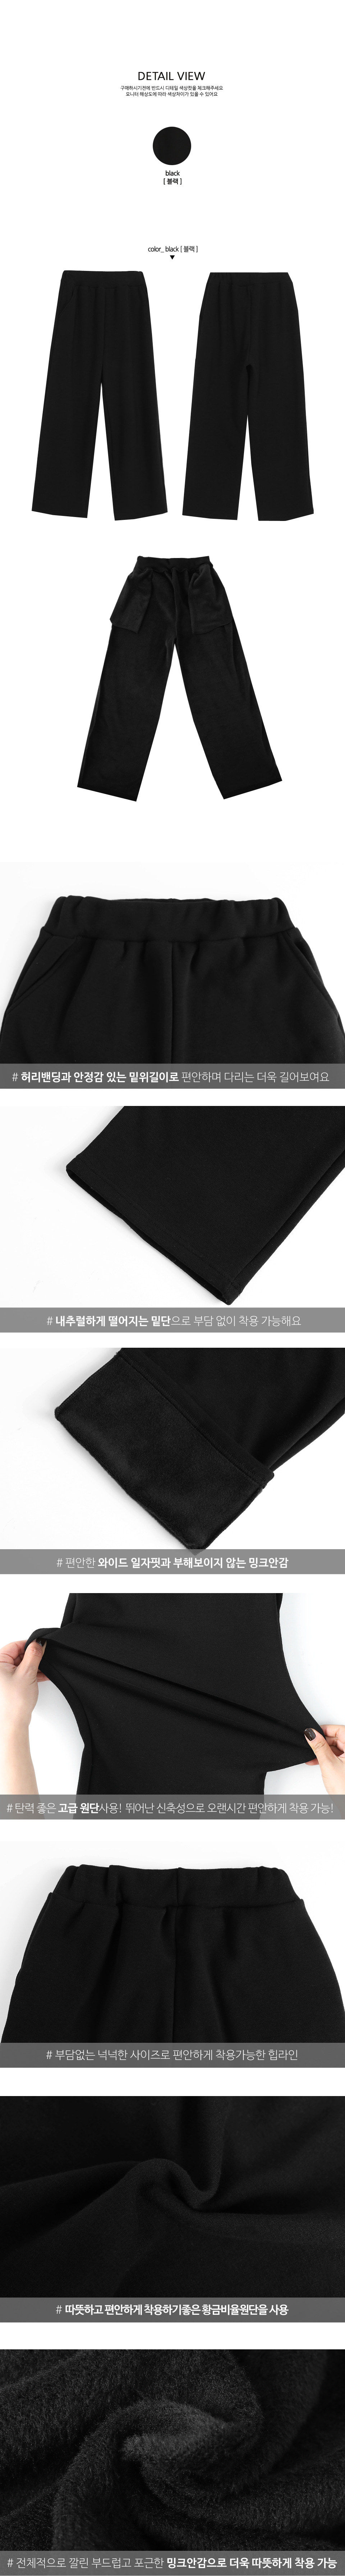 Heat mink training pants